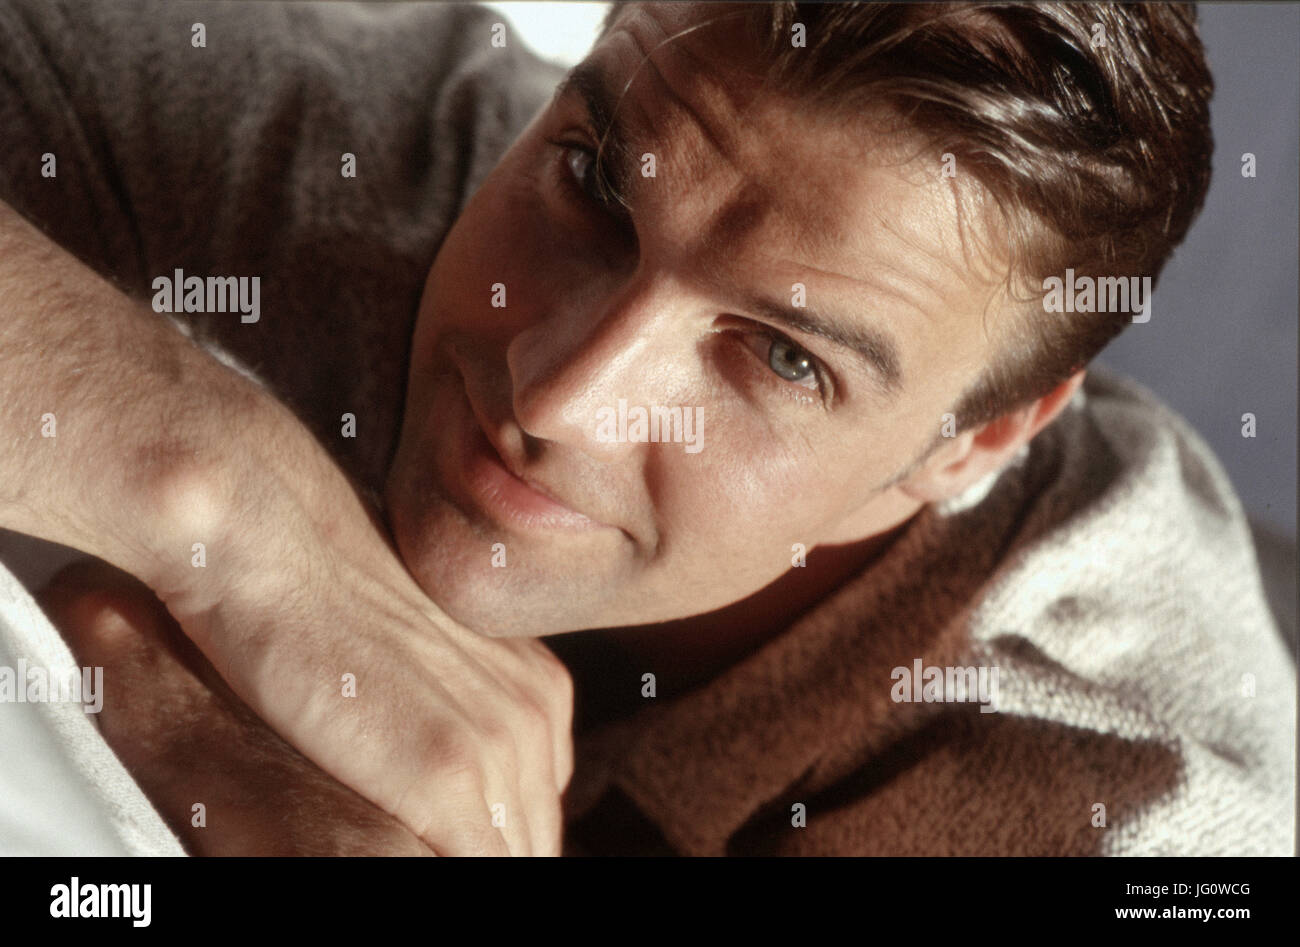 Attractive smiling man - Stock Image